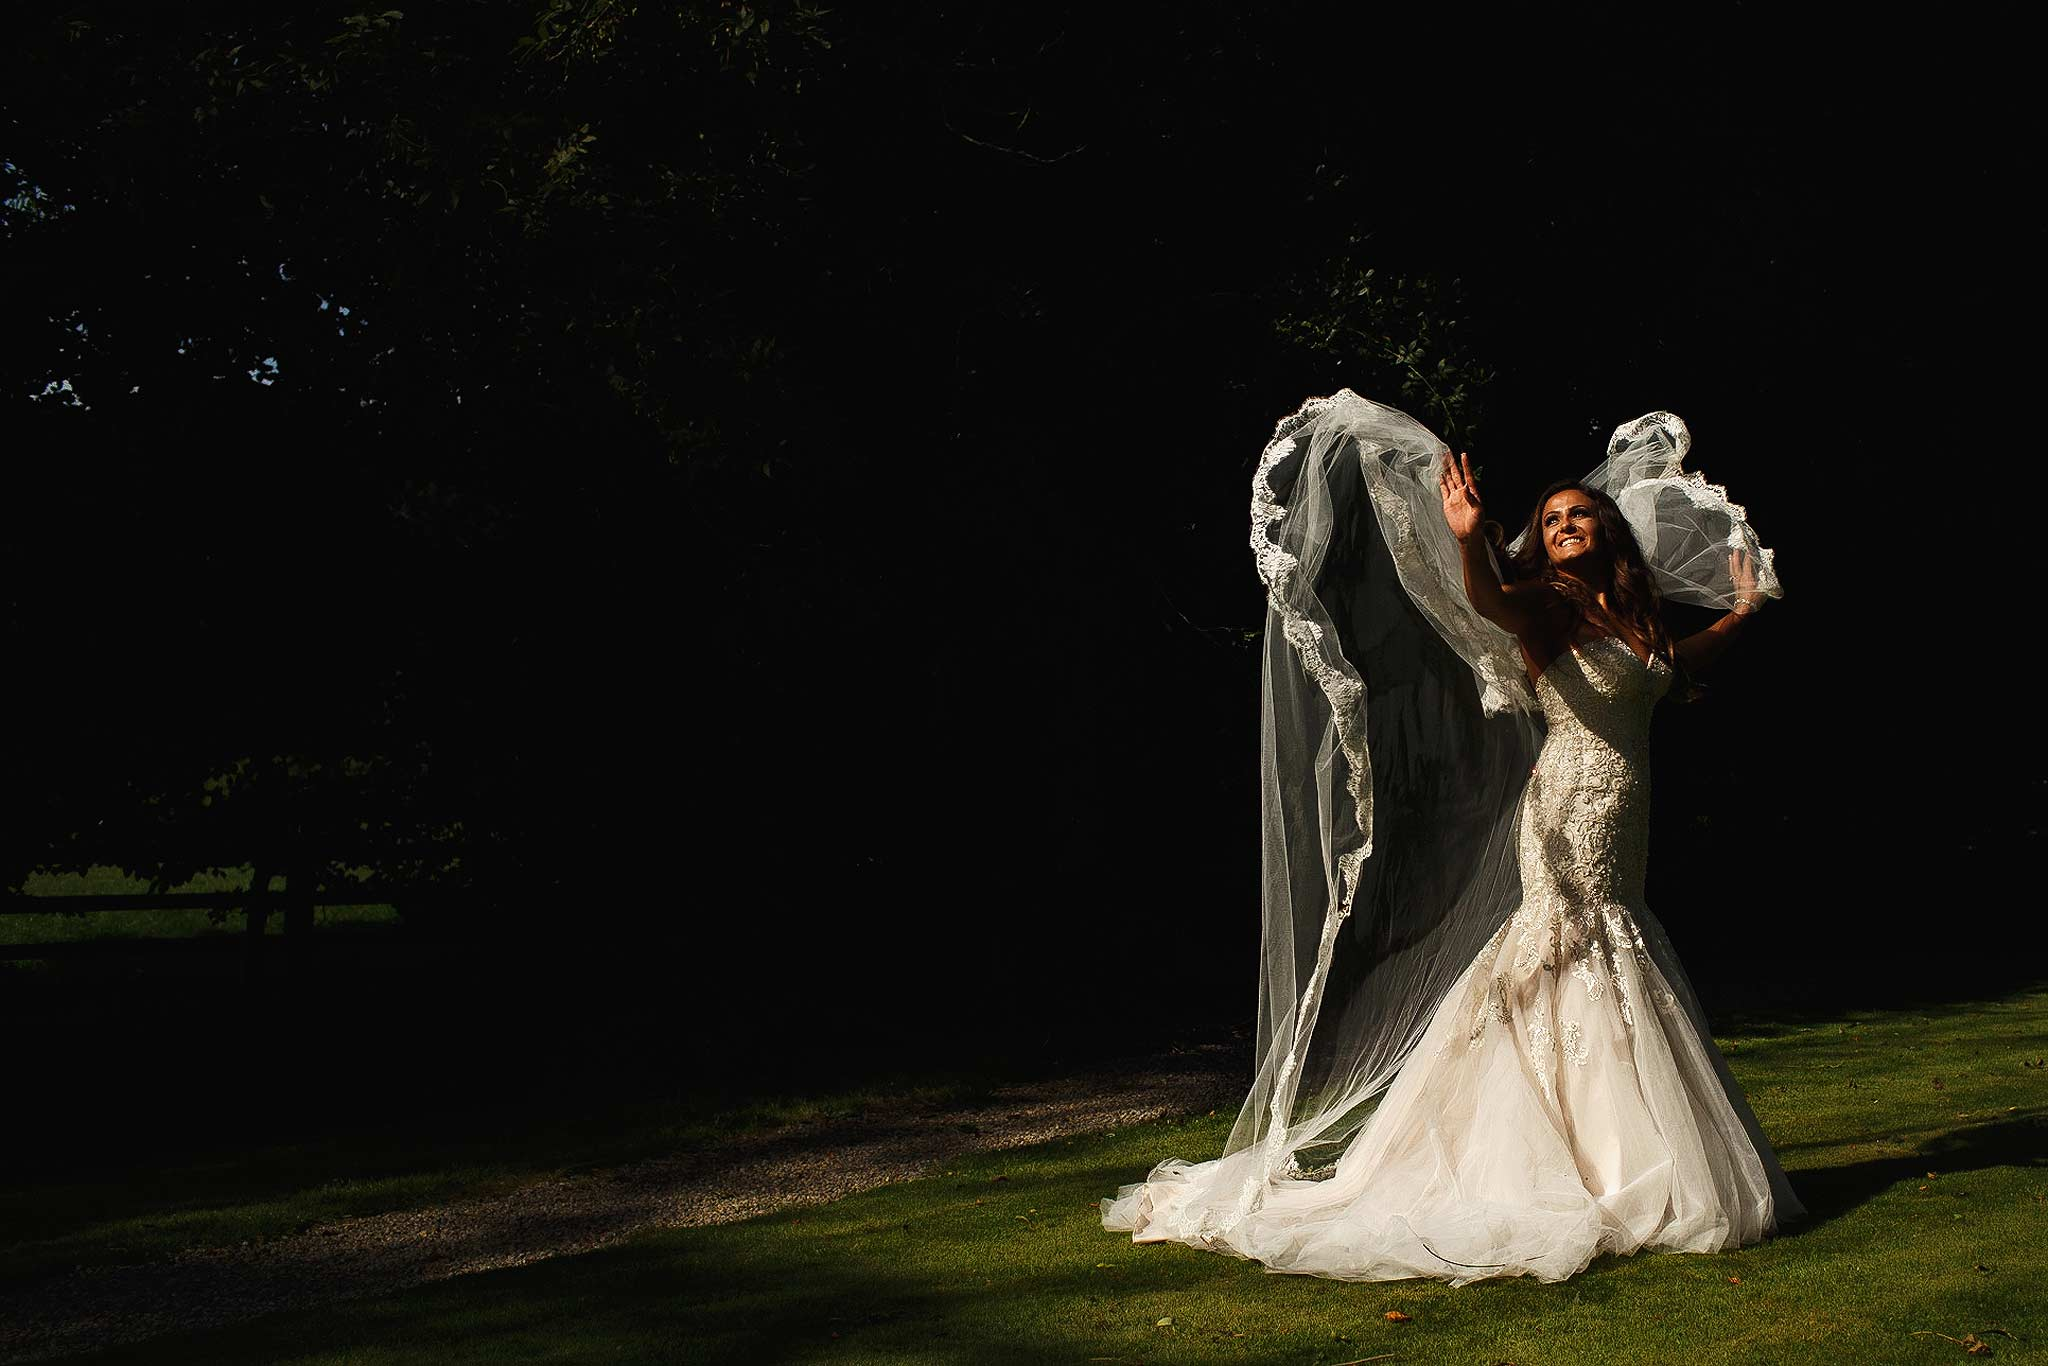 Brides veil flowing in the air like an angel in the gardens at mitton hall